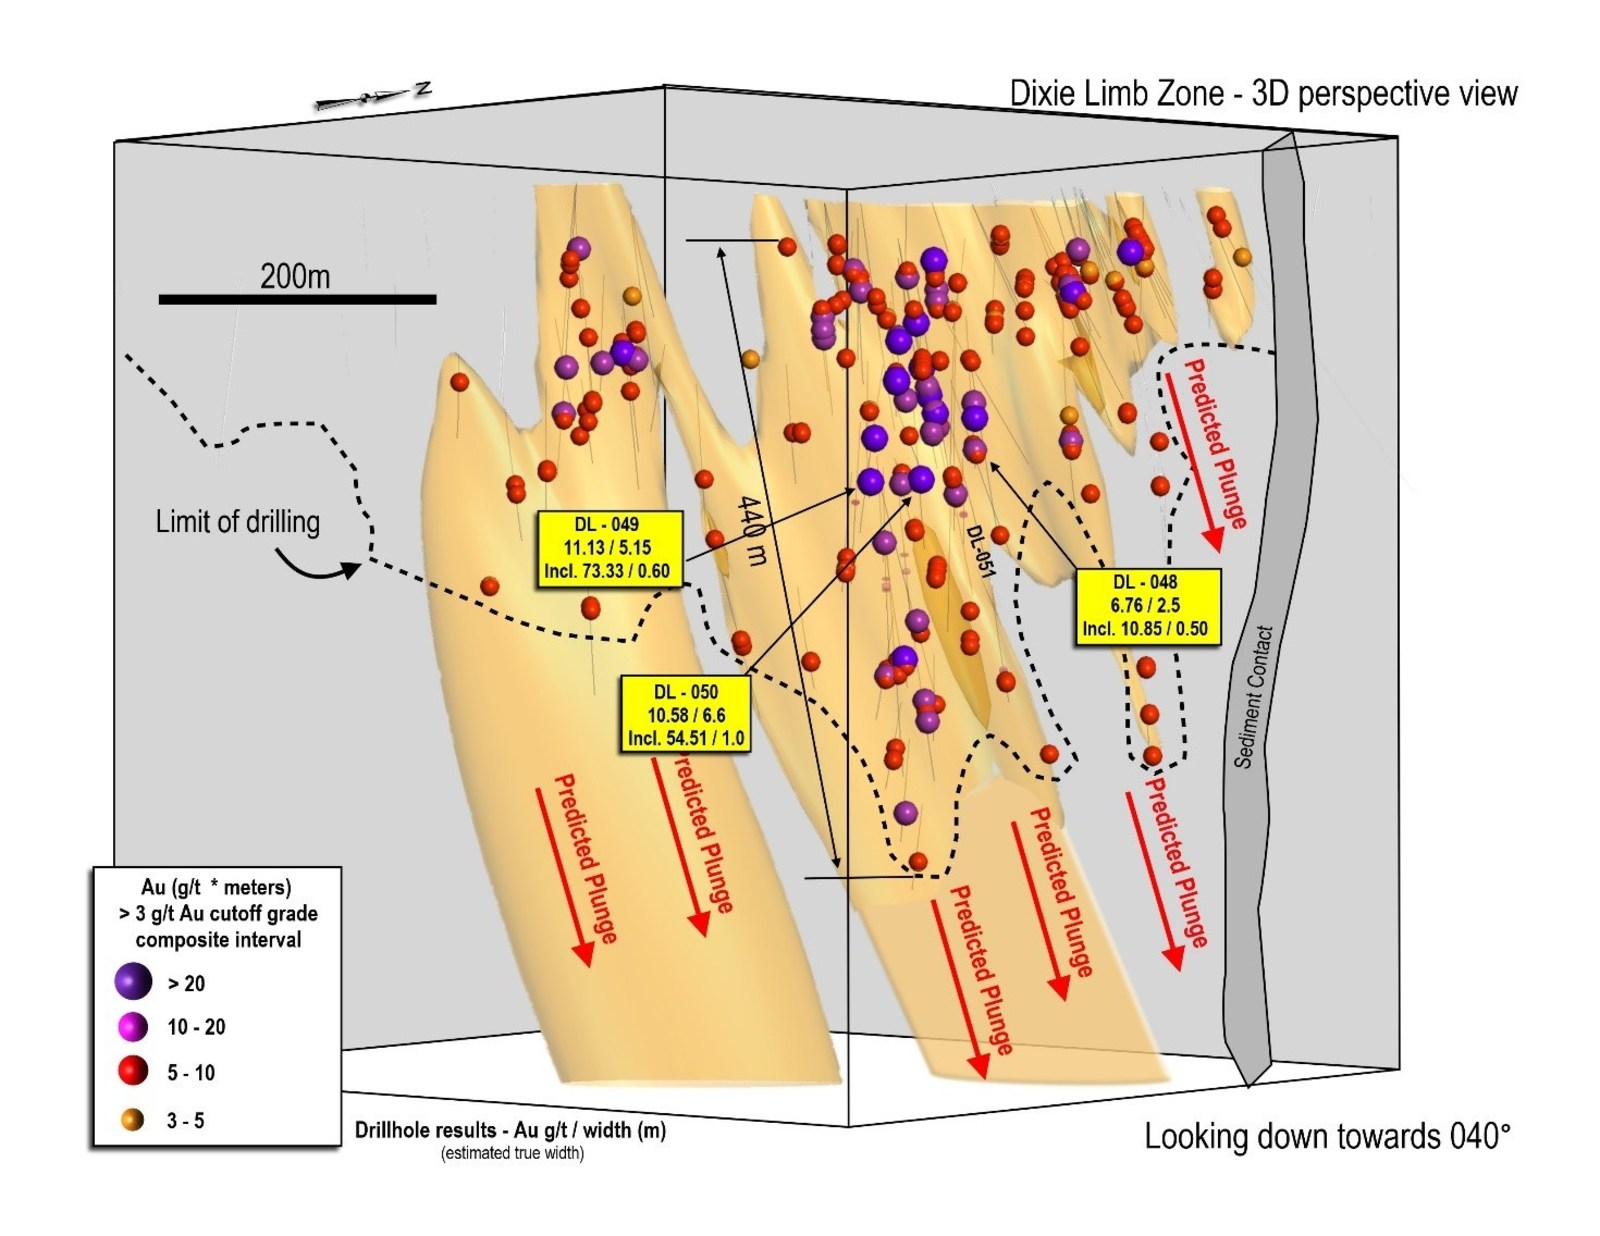 Figure 1: 3D section of Dixie Limb drilling to-date, view to northeast, showing steeply-plunging mineralization and predicted down-plunge high-grade zone geometries.  Maximum vertical drill depth is 450 metres, and all zones remain open to extension.  Limits of current drilling shown with dashed line.  The adjacent Hinge Zone has been removed from the foreground for ease of view.